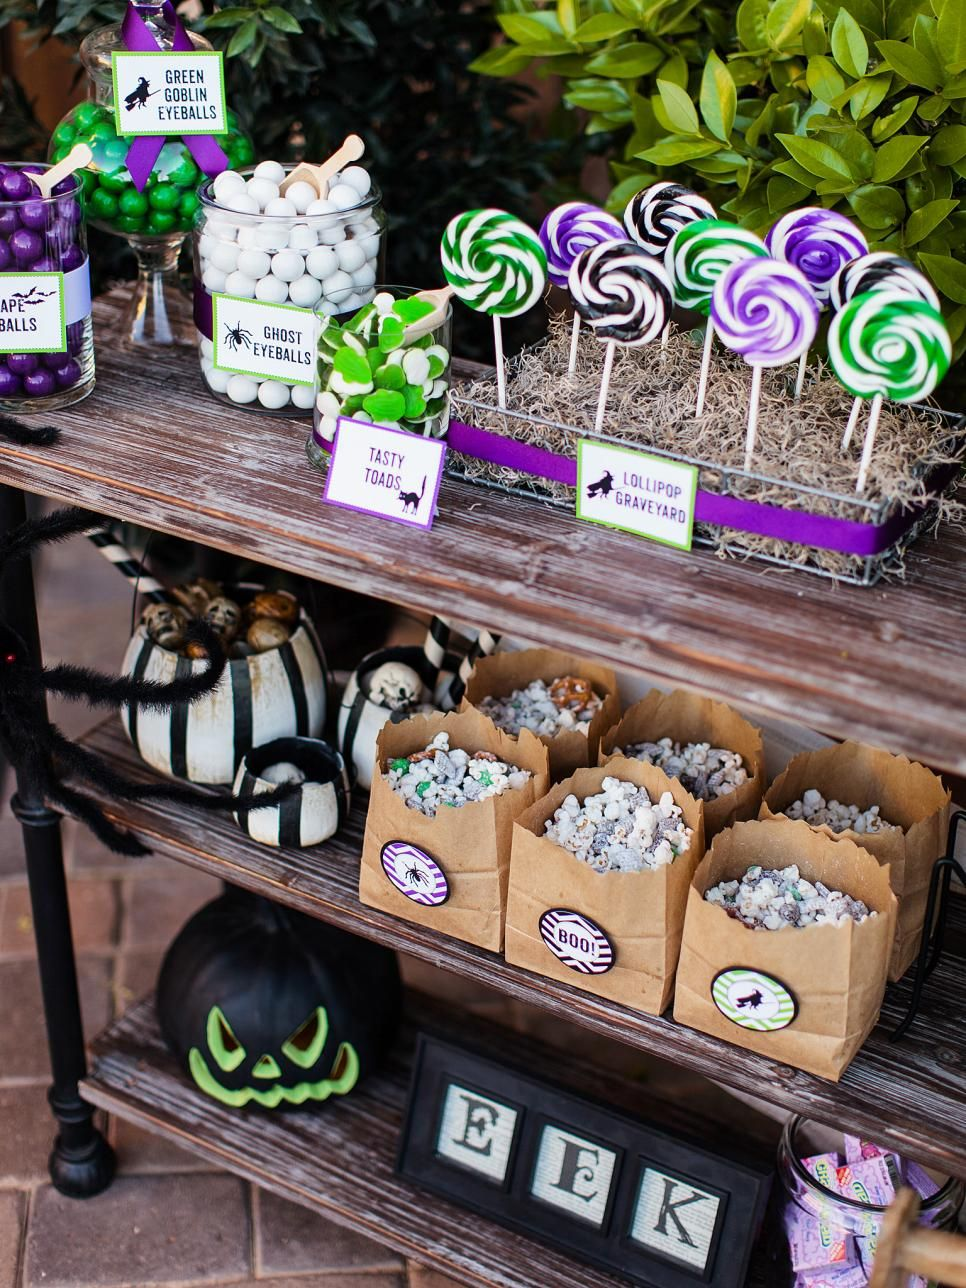 Delight trickortreaters of all ages with an outdoor